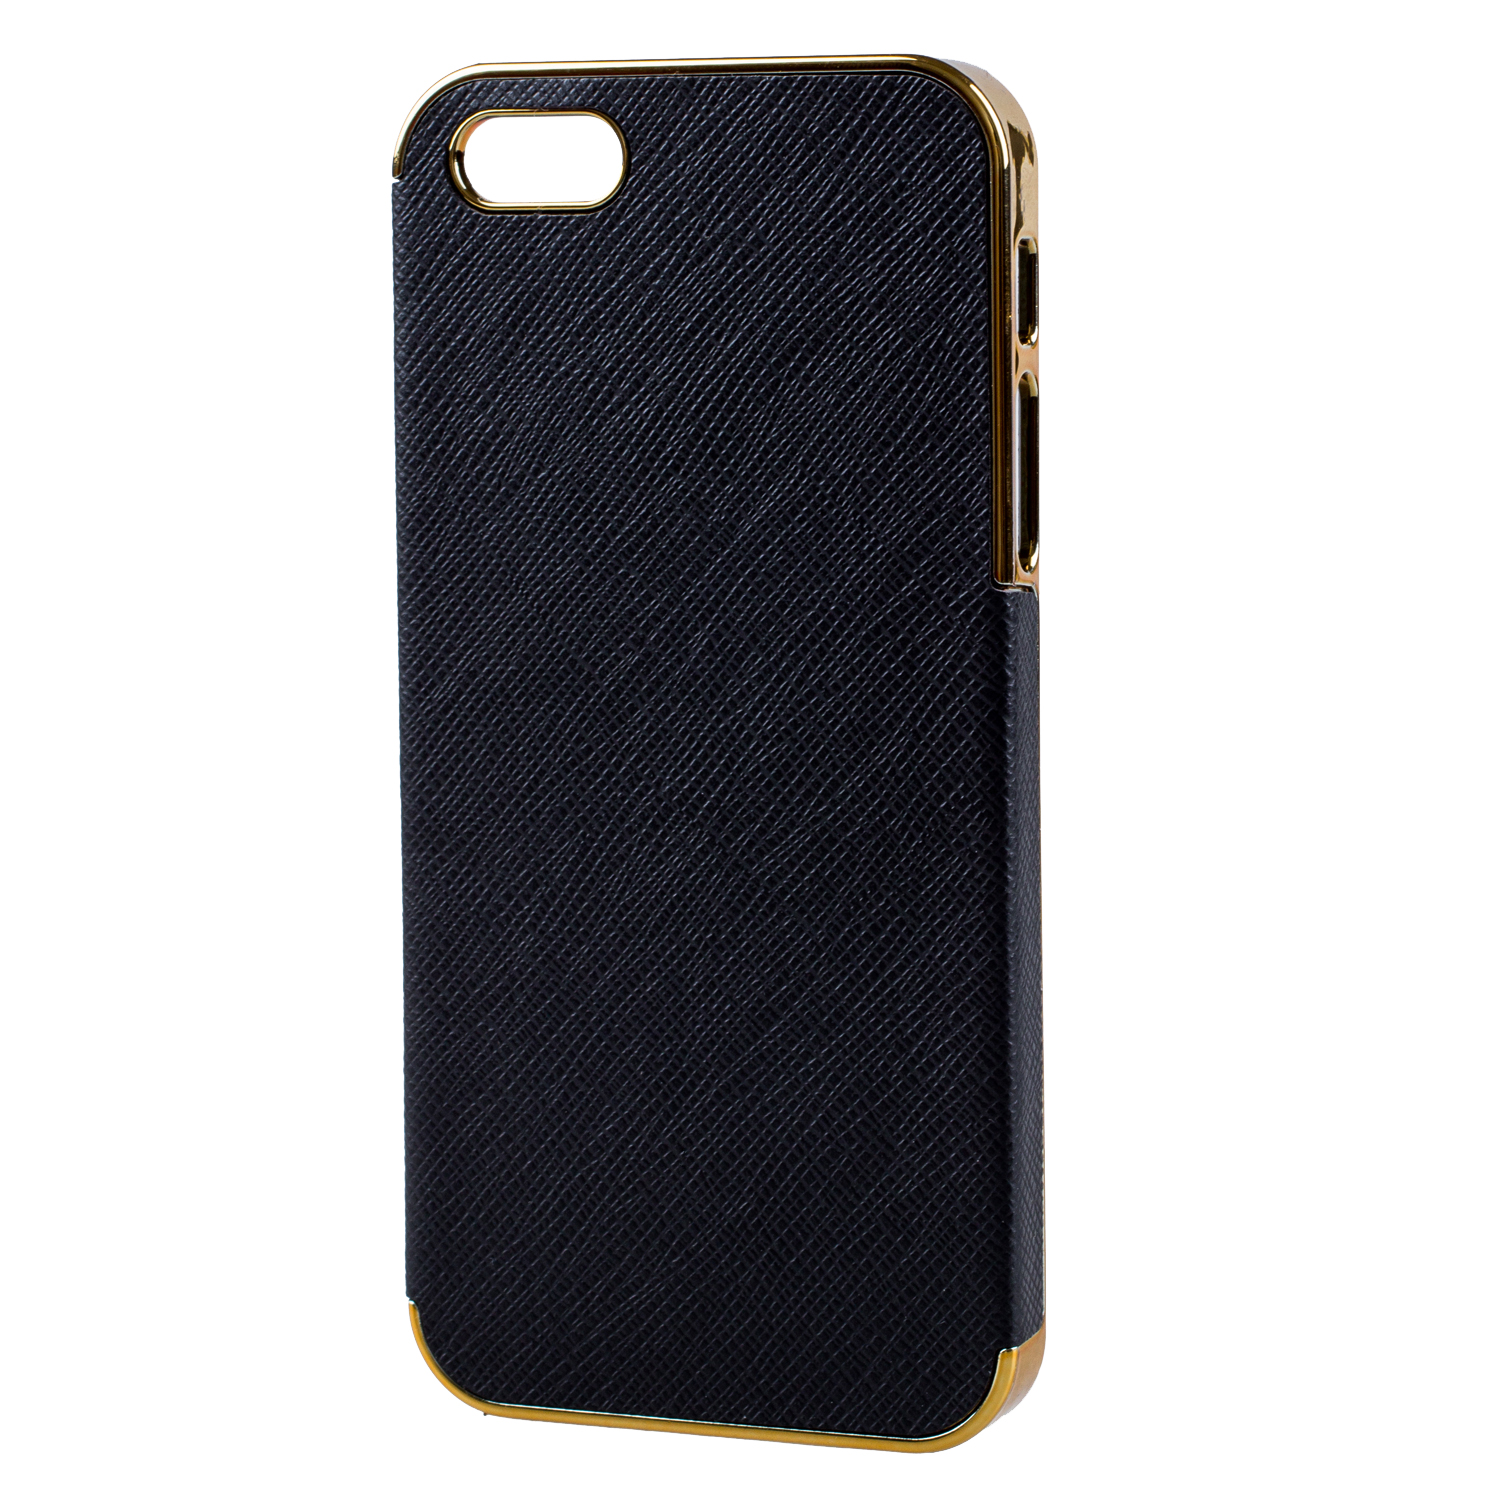 gold iphone 5 case frame luxury leather chrome back cover for 14202